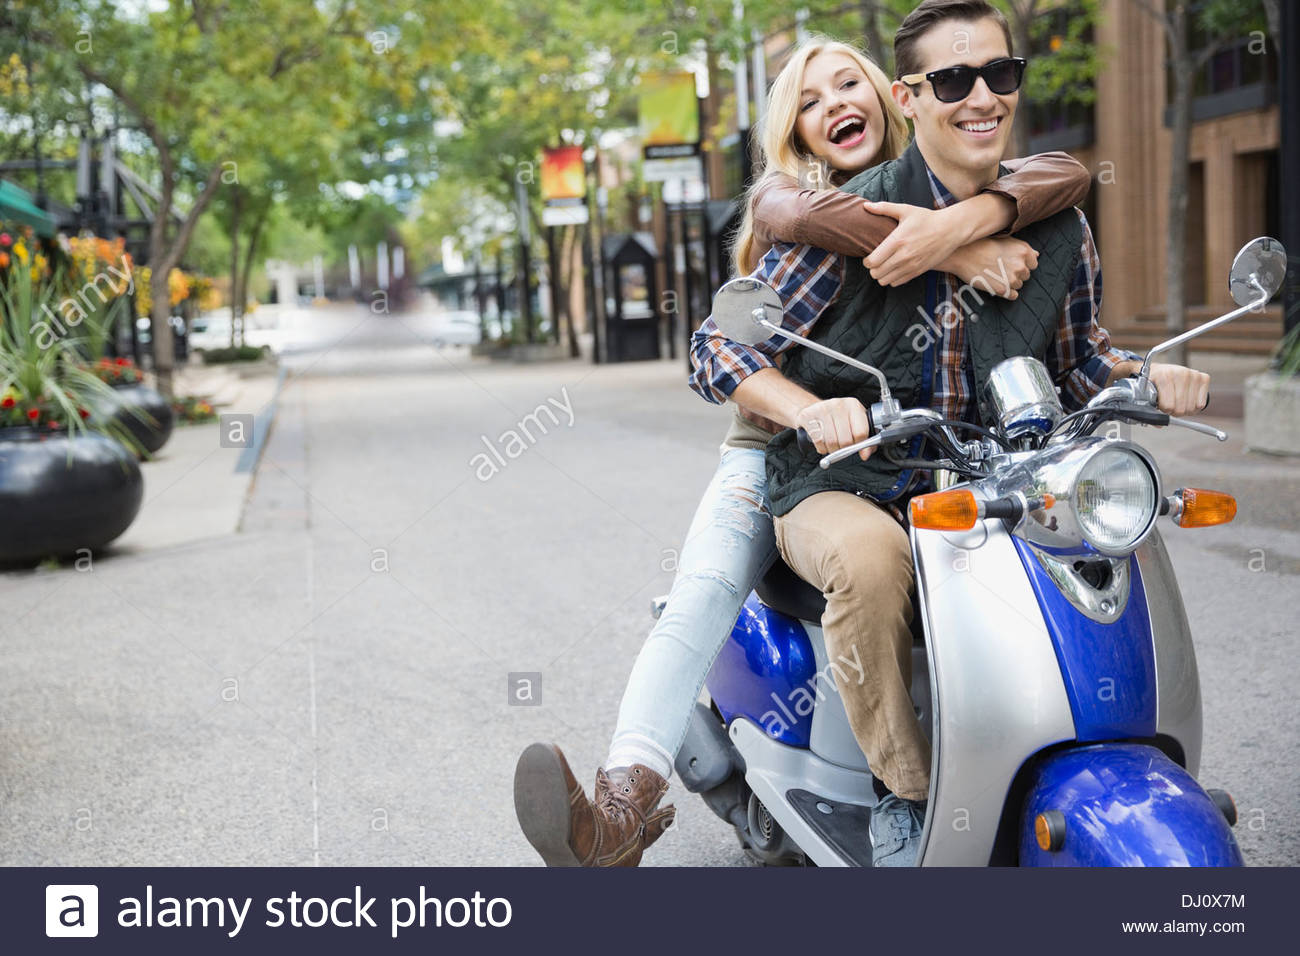 Couple riding on scooter - Stock Image